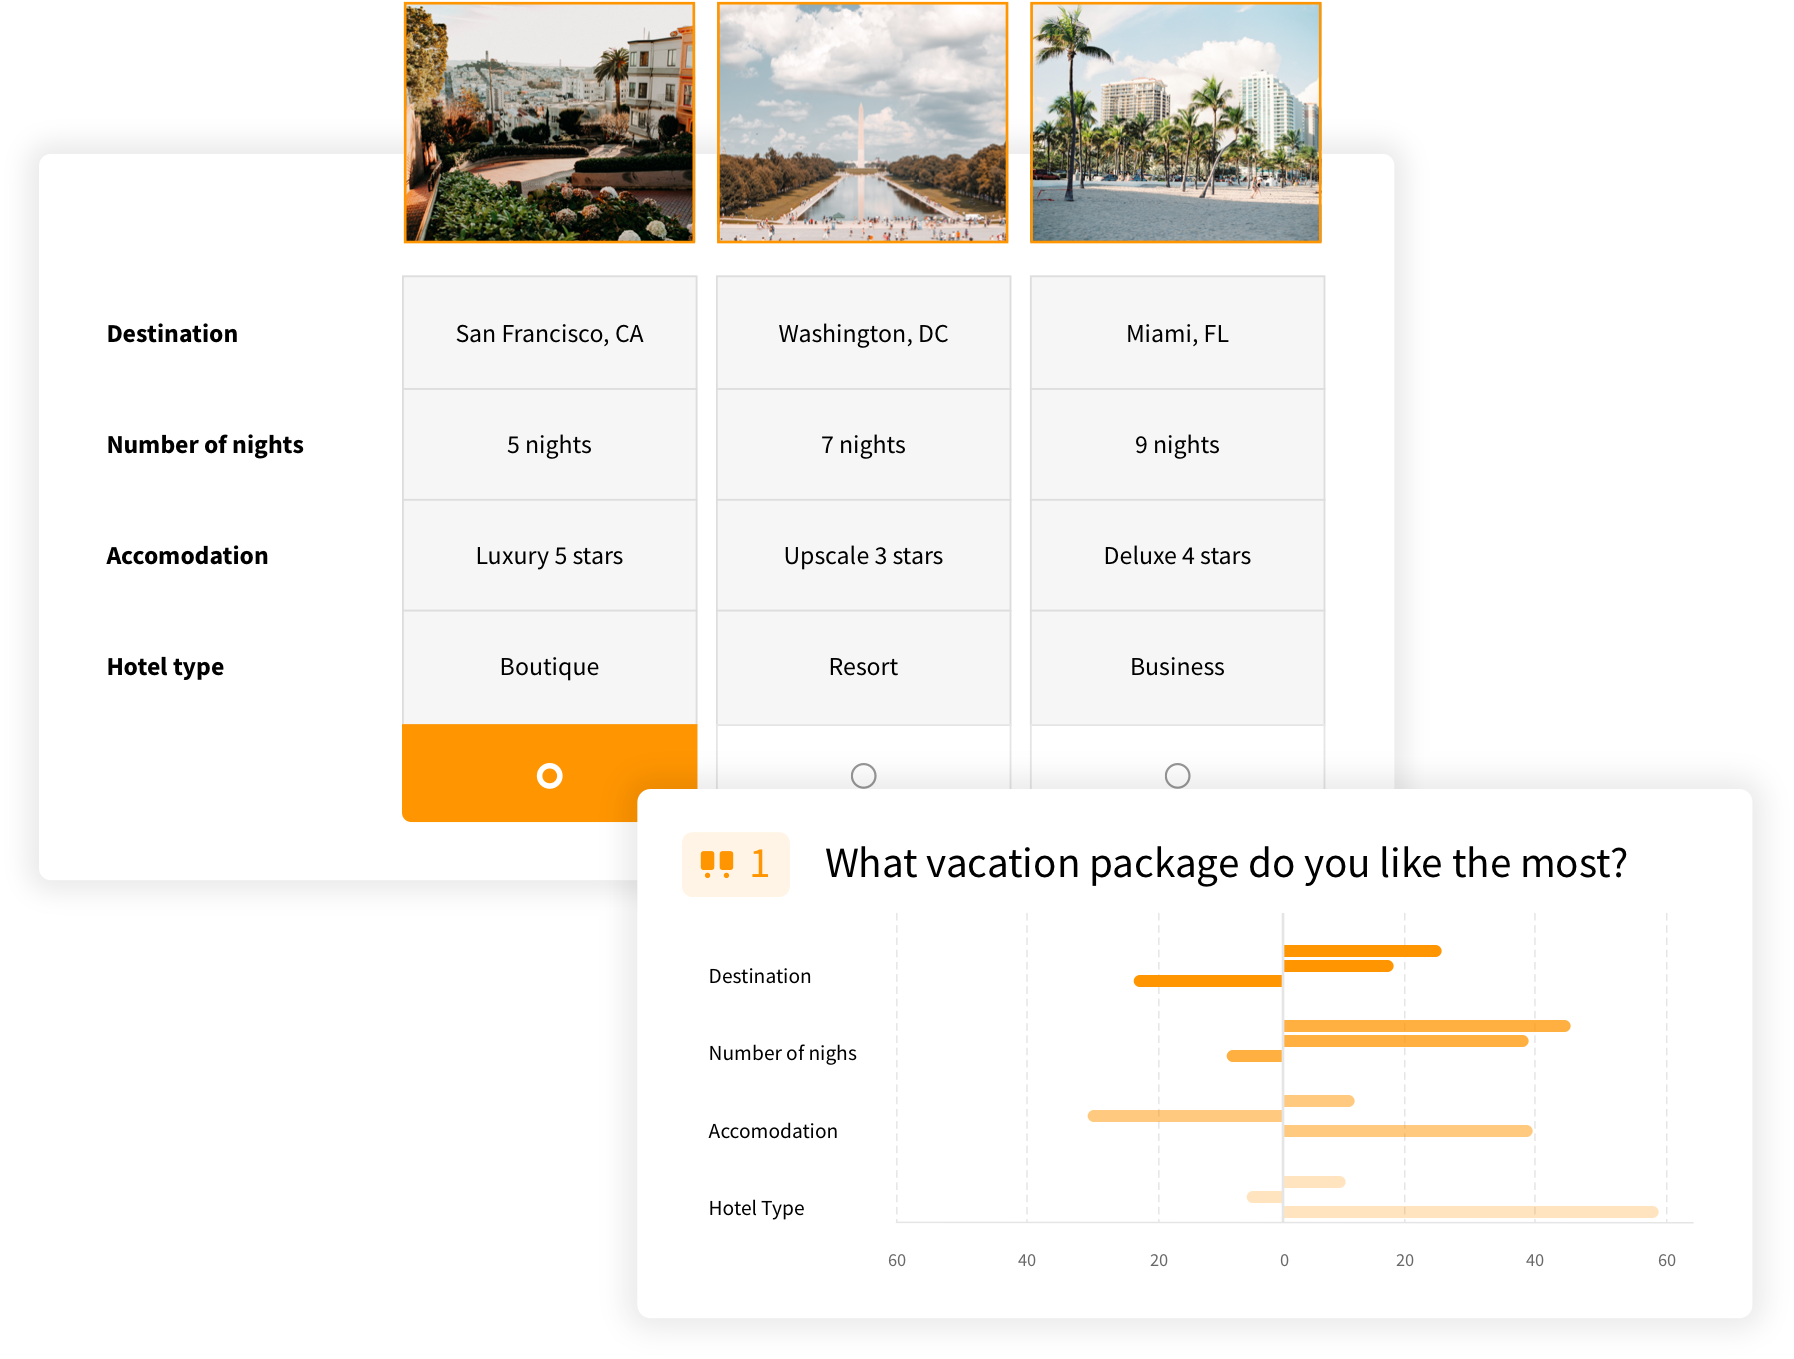 Image of a sample conjoint analysis featuring vacation packages and visualized results